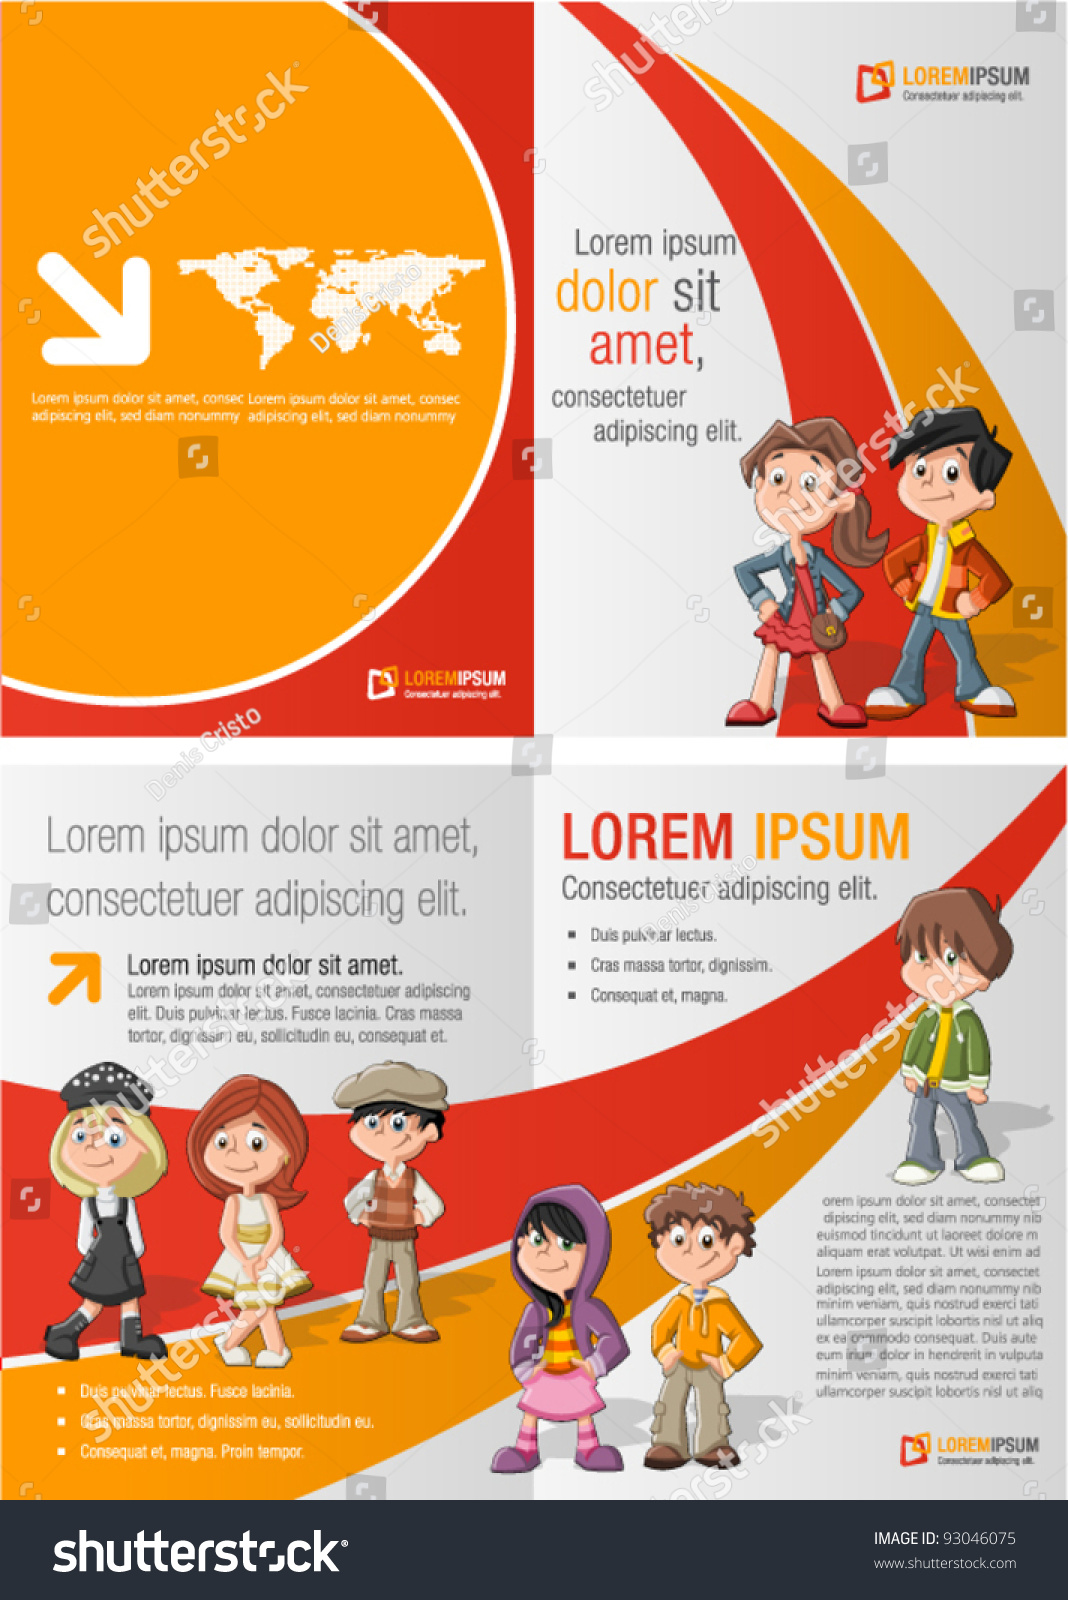 orange red template advertising brochure children stock vector orange and red template for advertising brochure children students